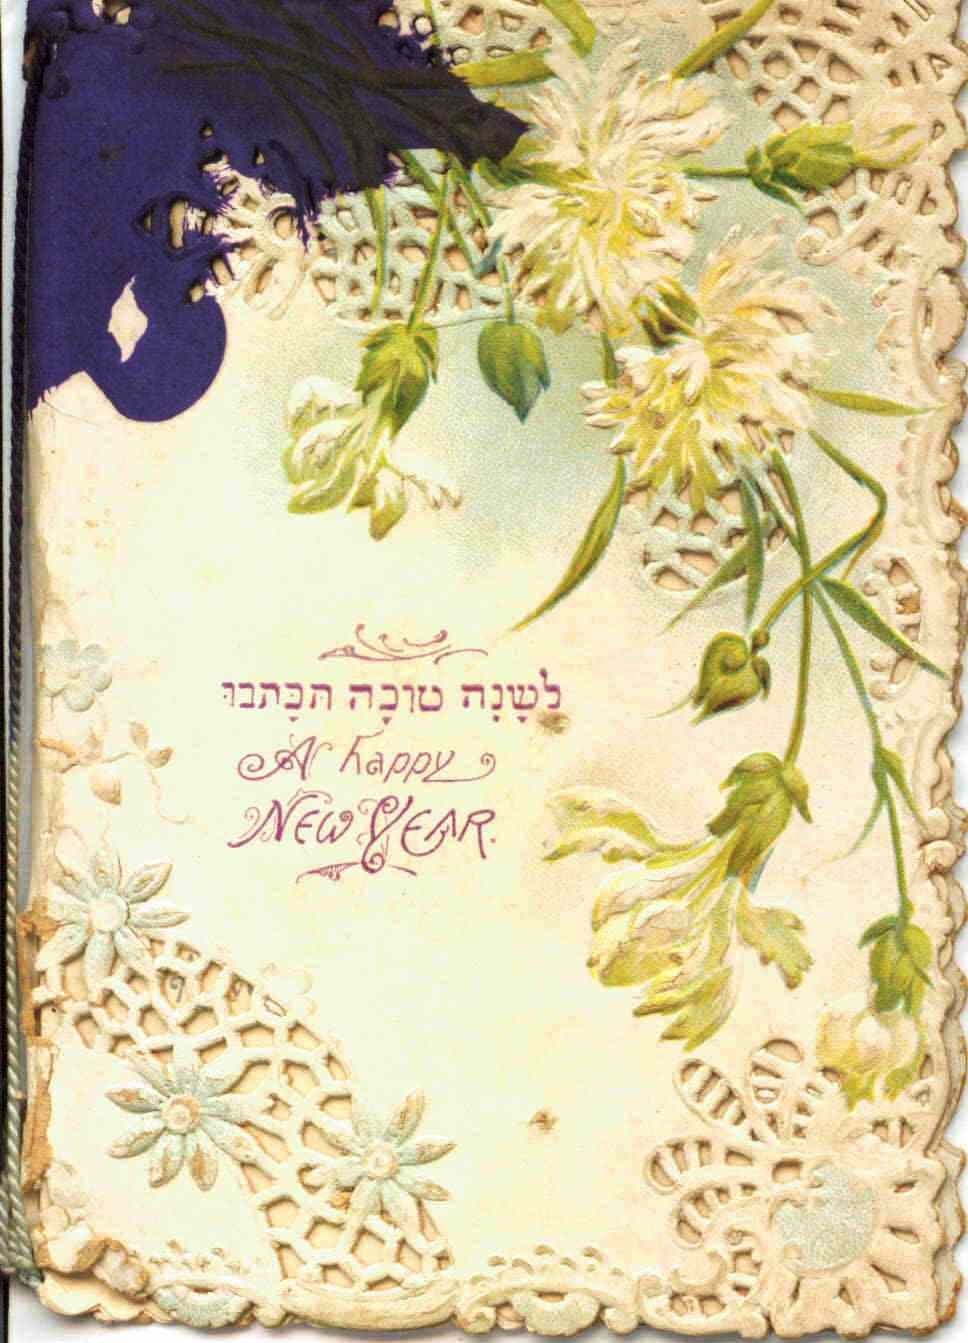 Pin by jewish heritage center at new england historic genealogical rosh hashana greeting card from mr complete with a distinctive ink splotch wyner collection wilke russell snider jewish historical society kristyandbryce Images